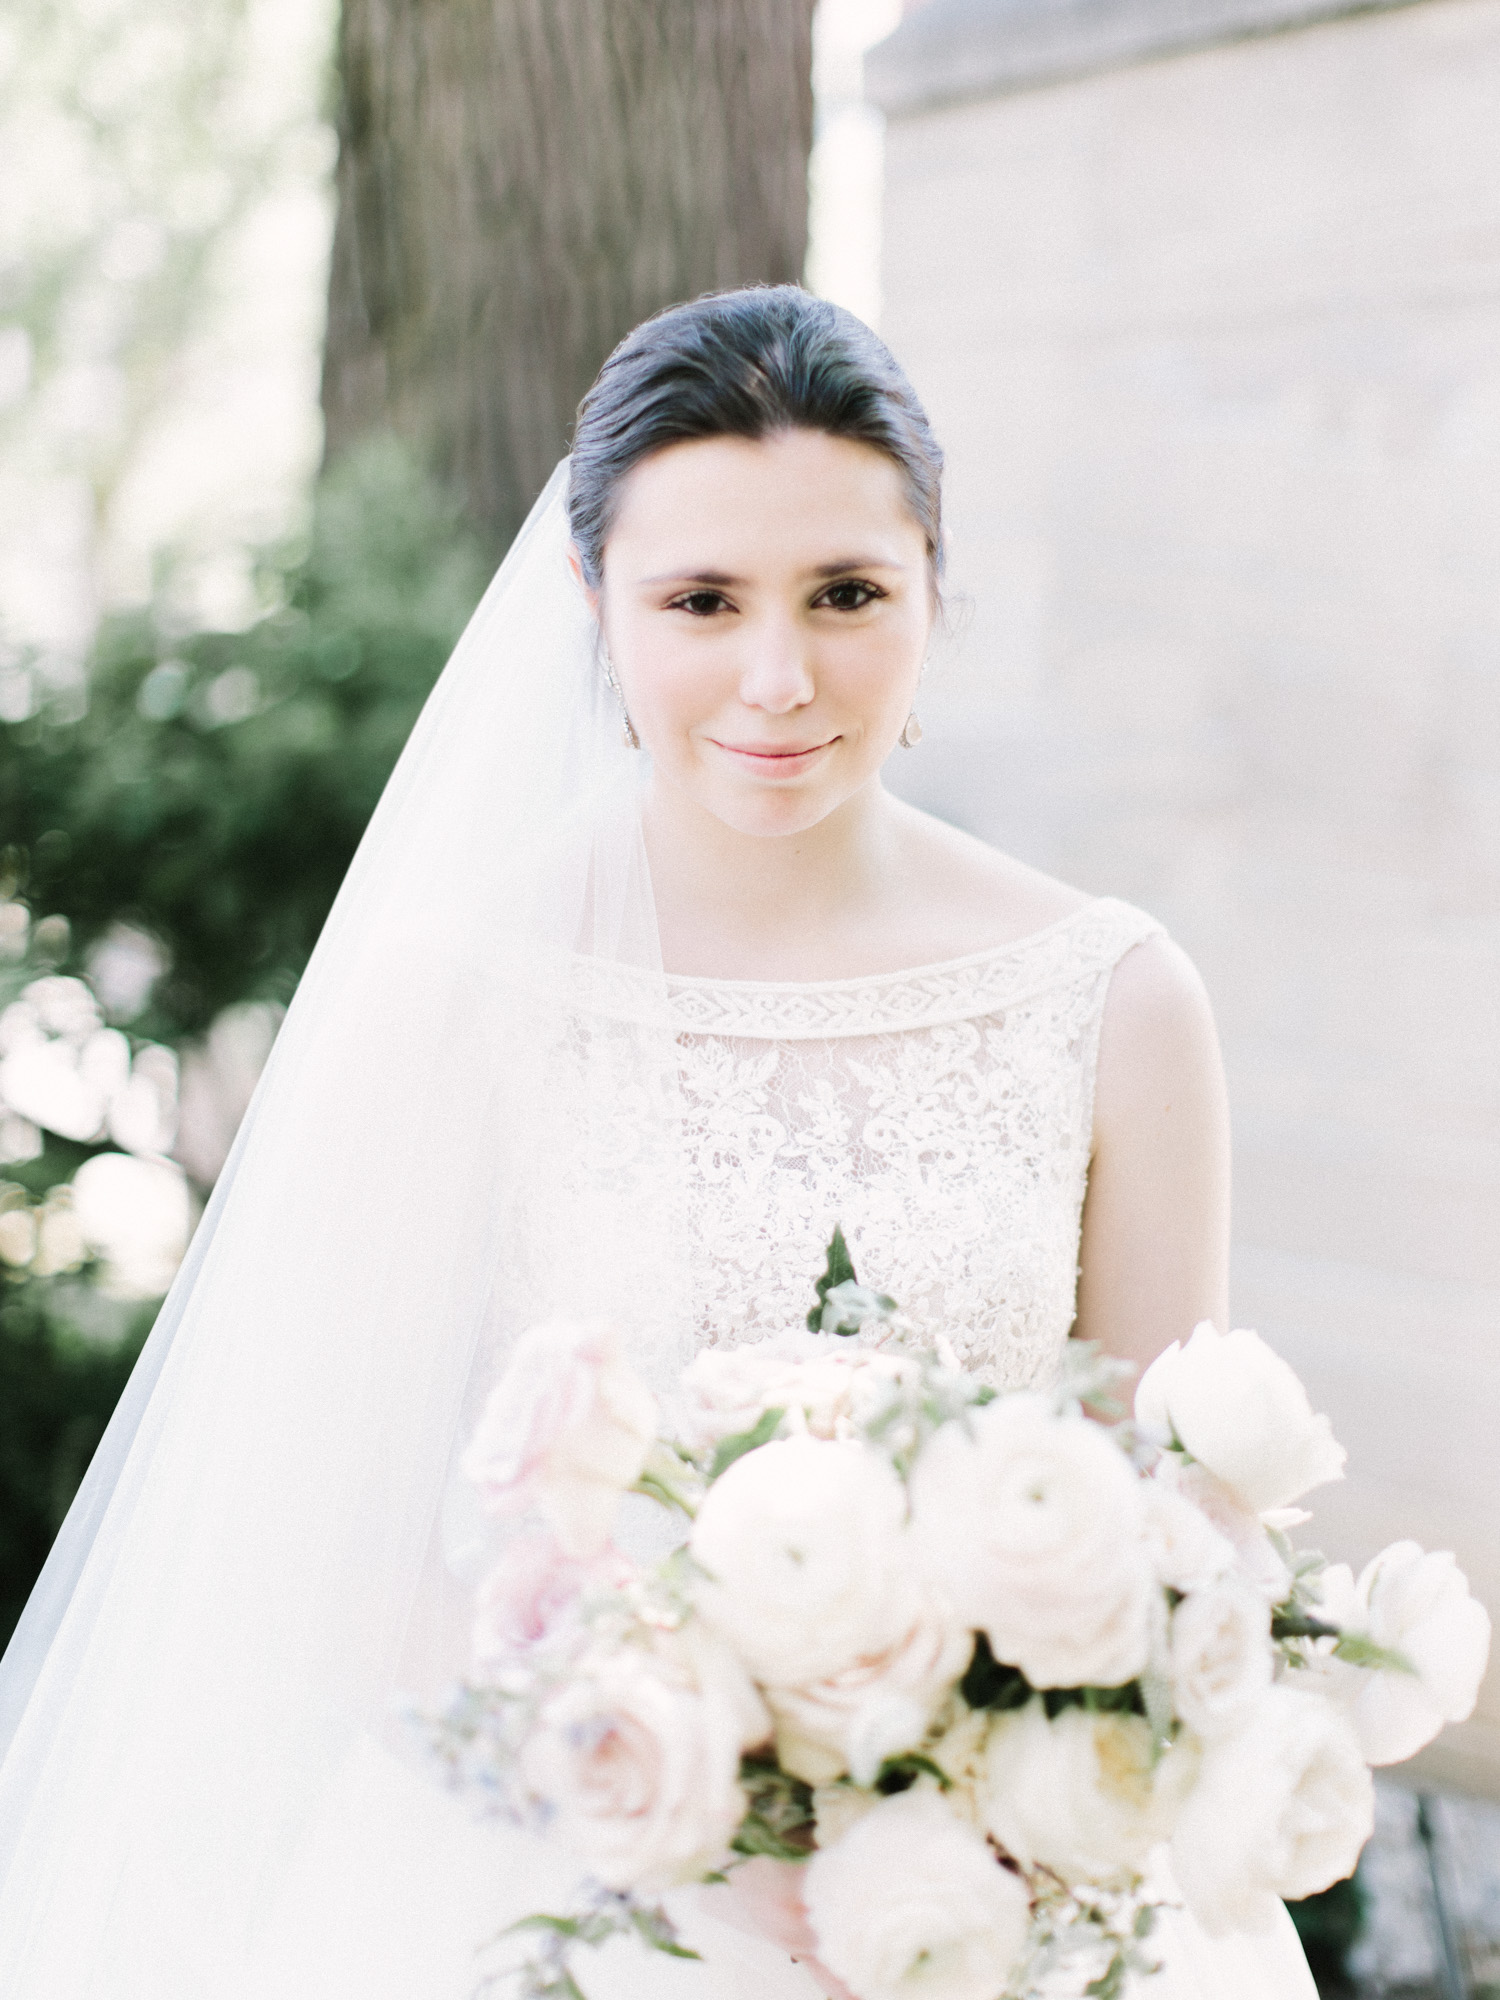 a bride in a long veil with porcelain skin and dark hair looks at the camera on her wedding day in Ann Arbor, Michigan